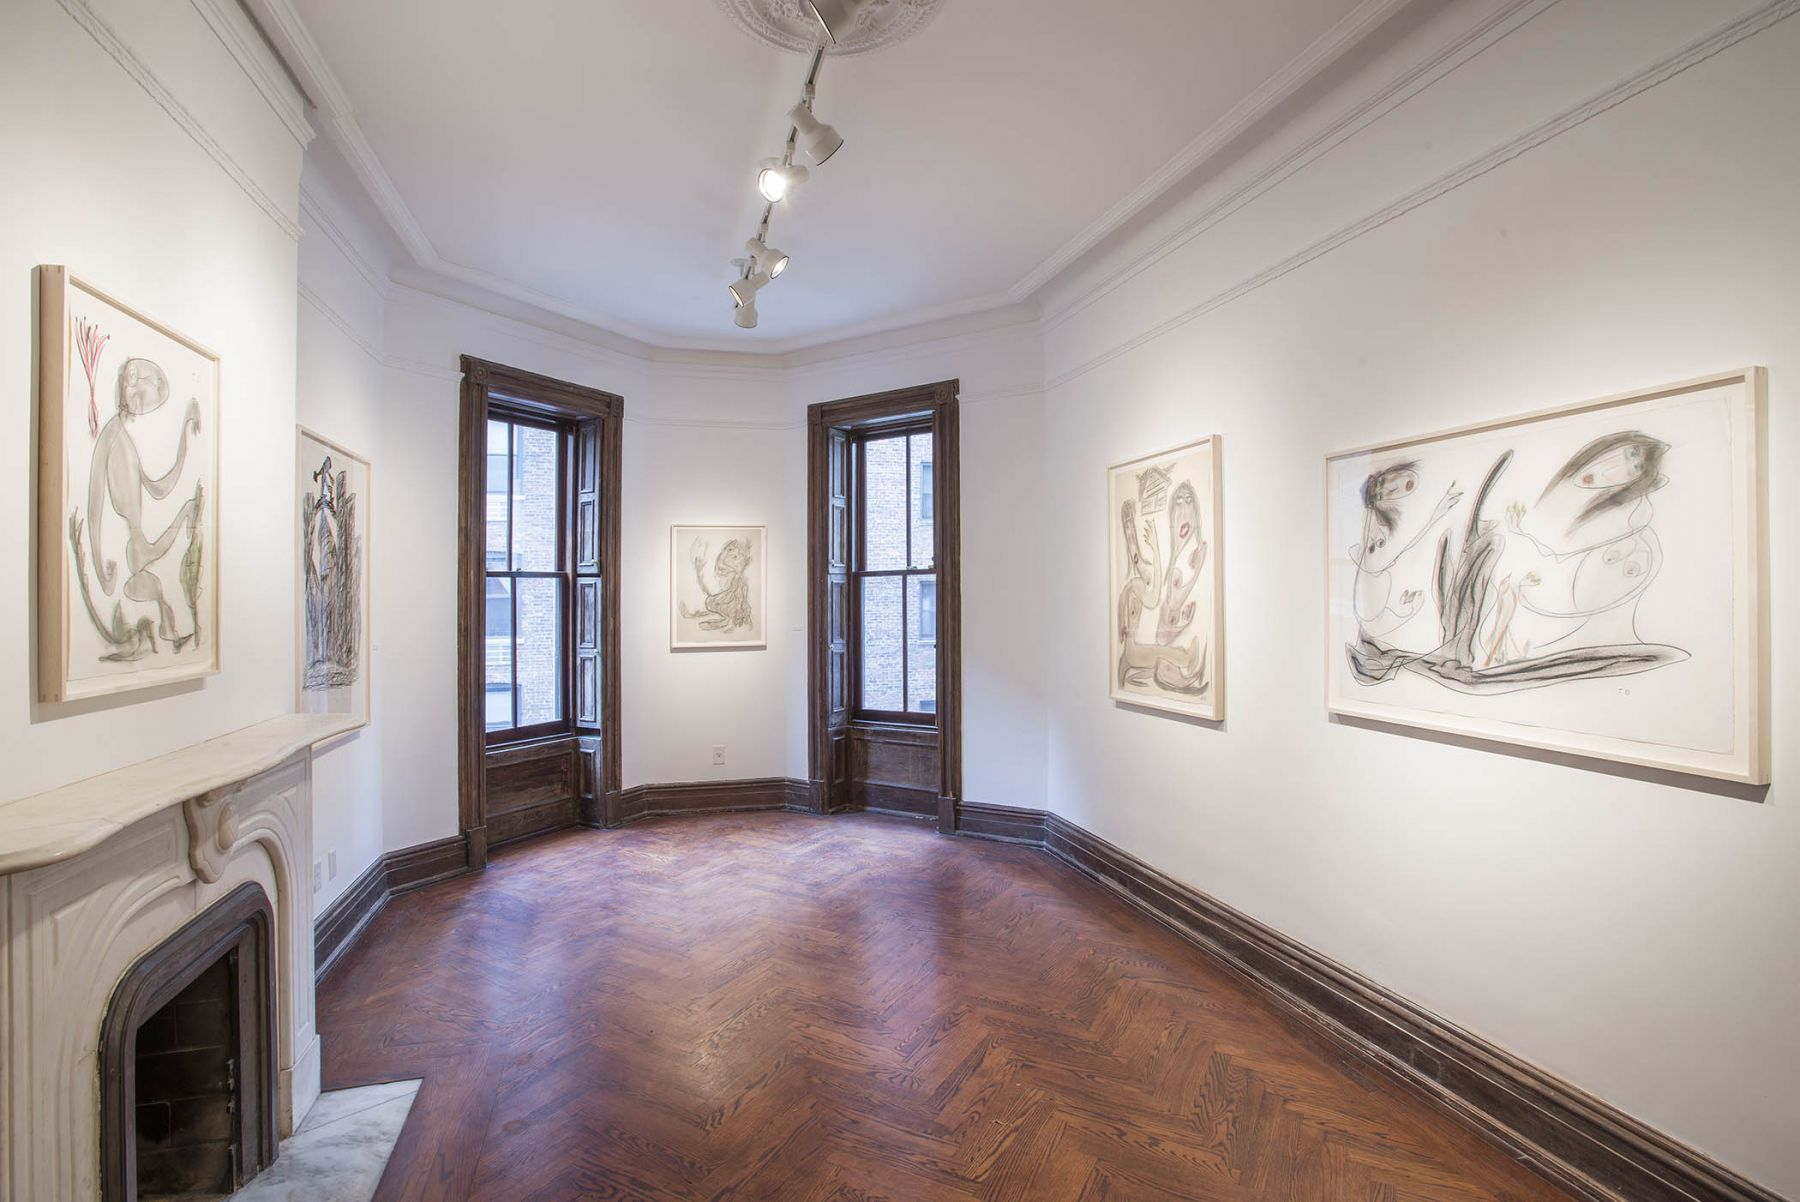 Works on Paper(Installation View), 118 East 64th Street, 2015